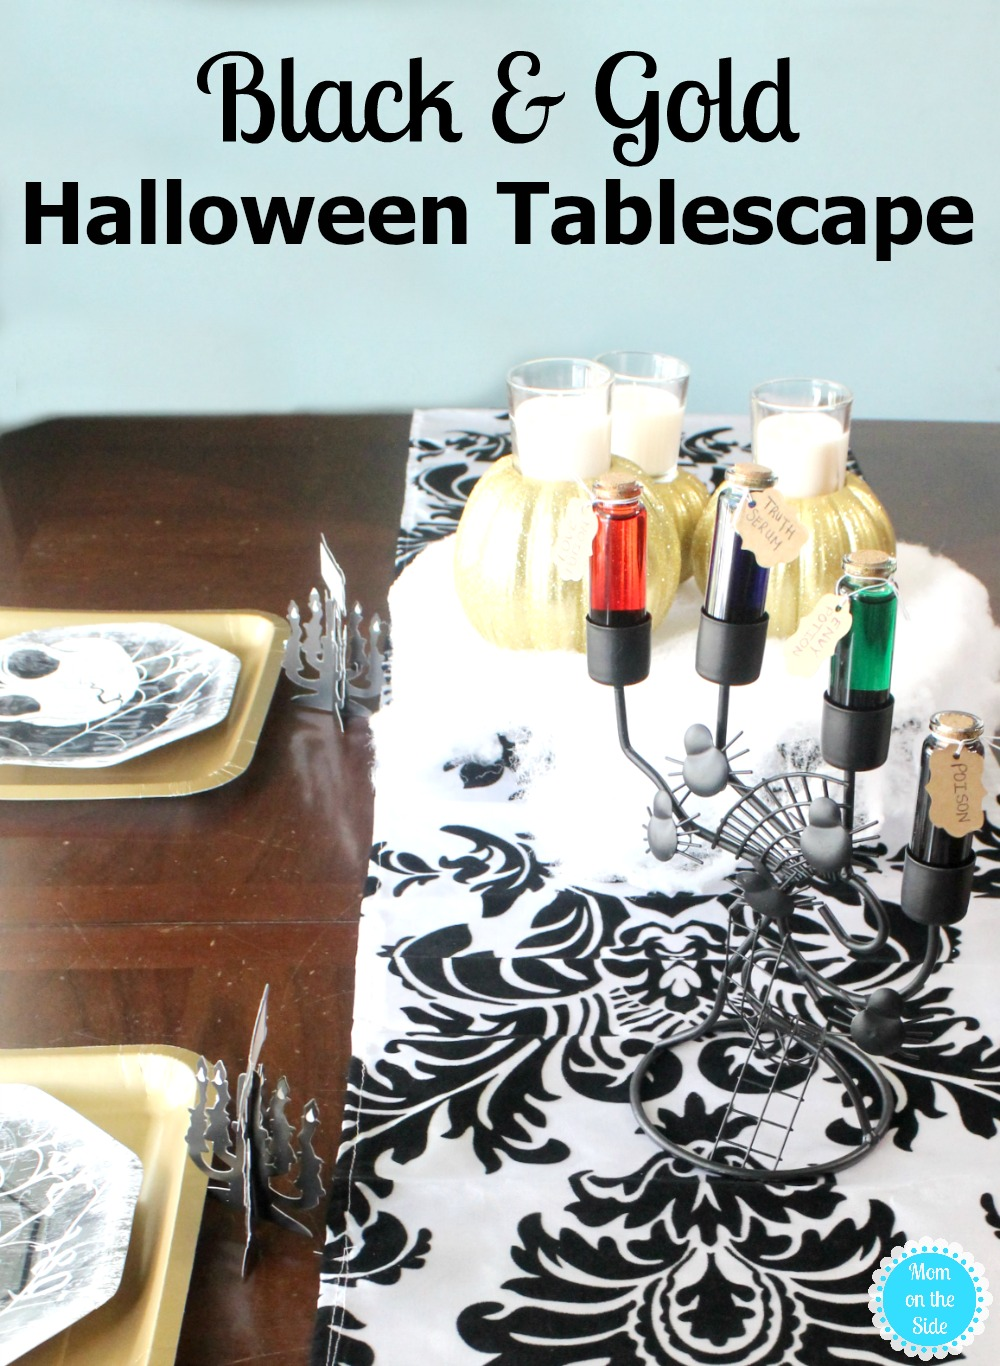 Ideas for a Black and Gold Halloween Tablescape for October